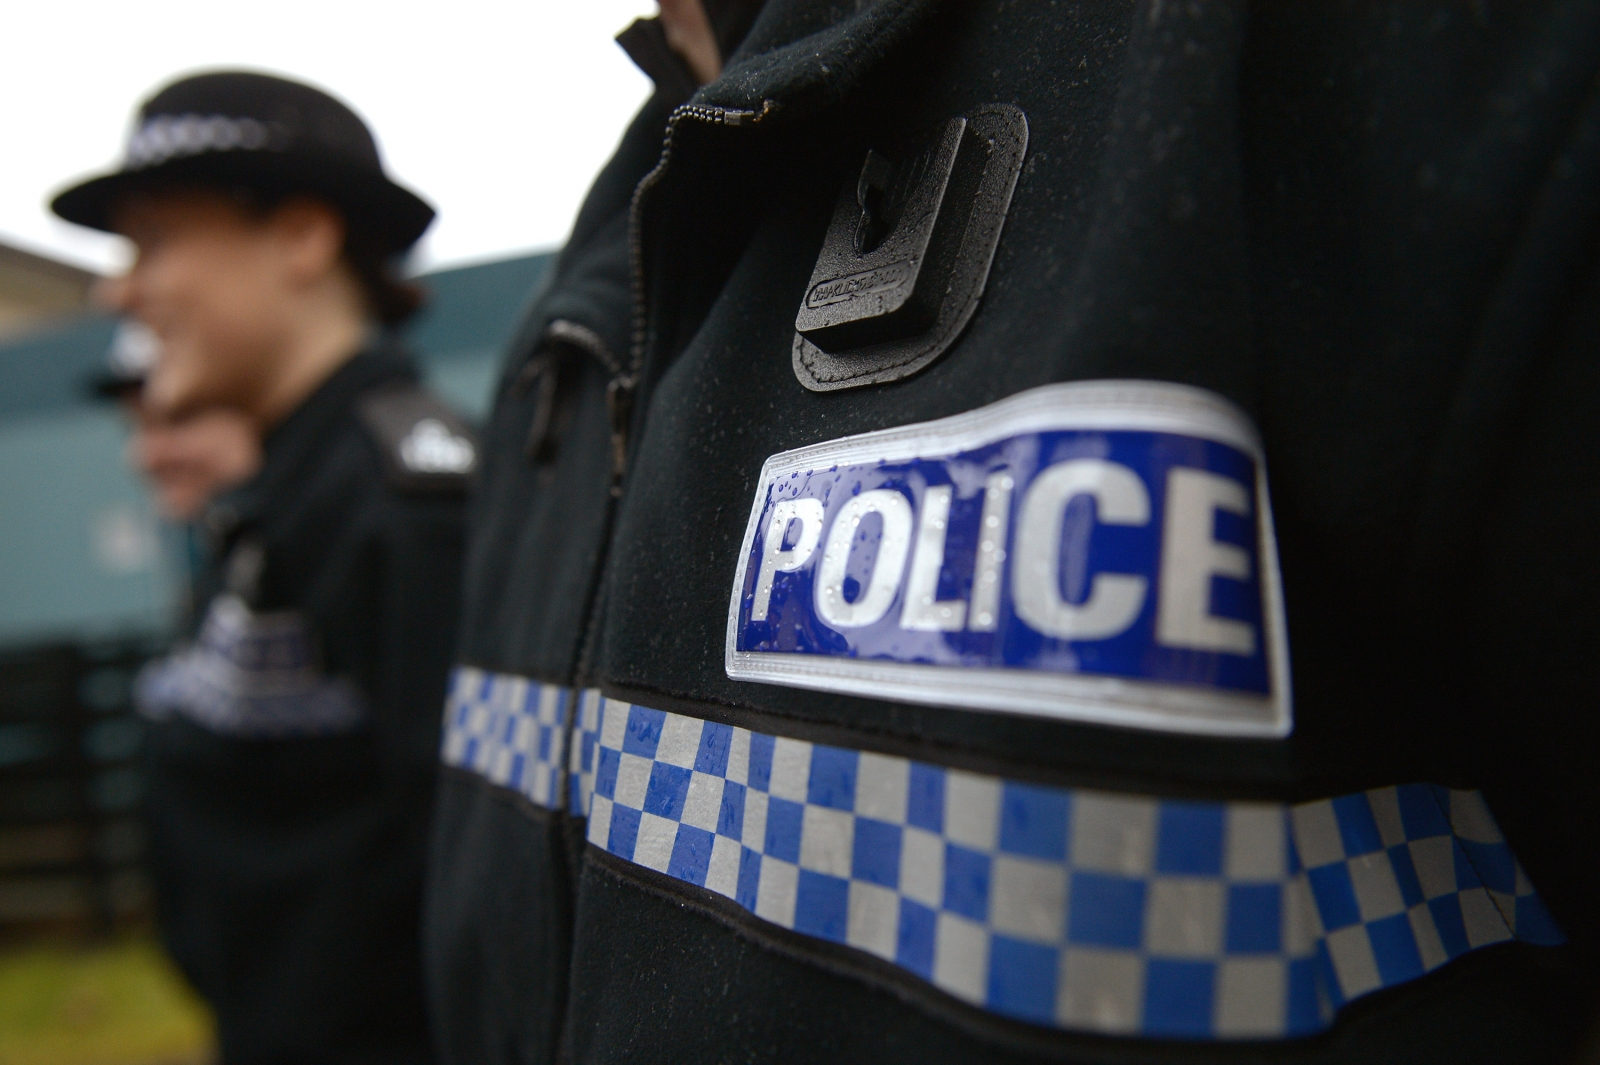 UK Police Stress Causing Wave Of Sickness And Mental Health Issues